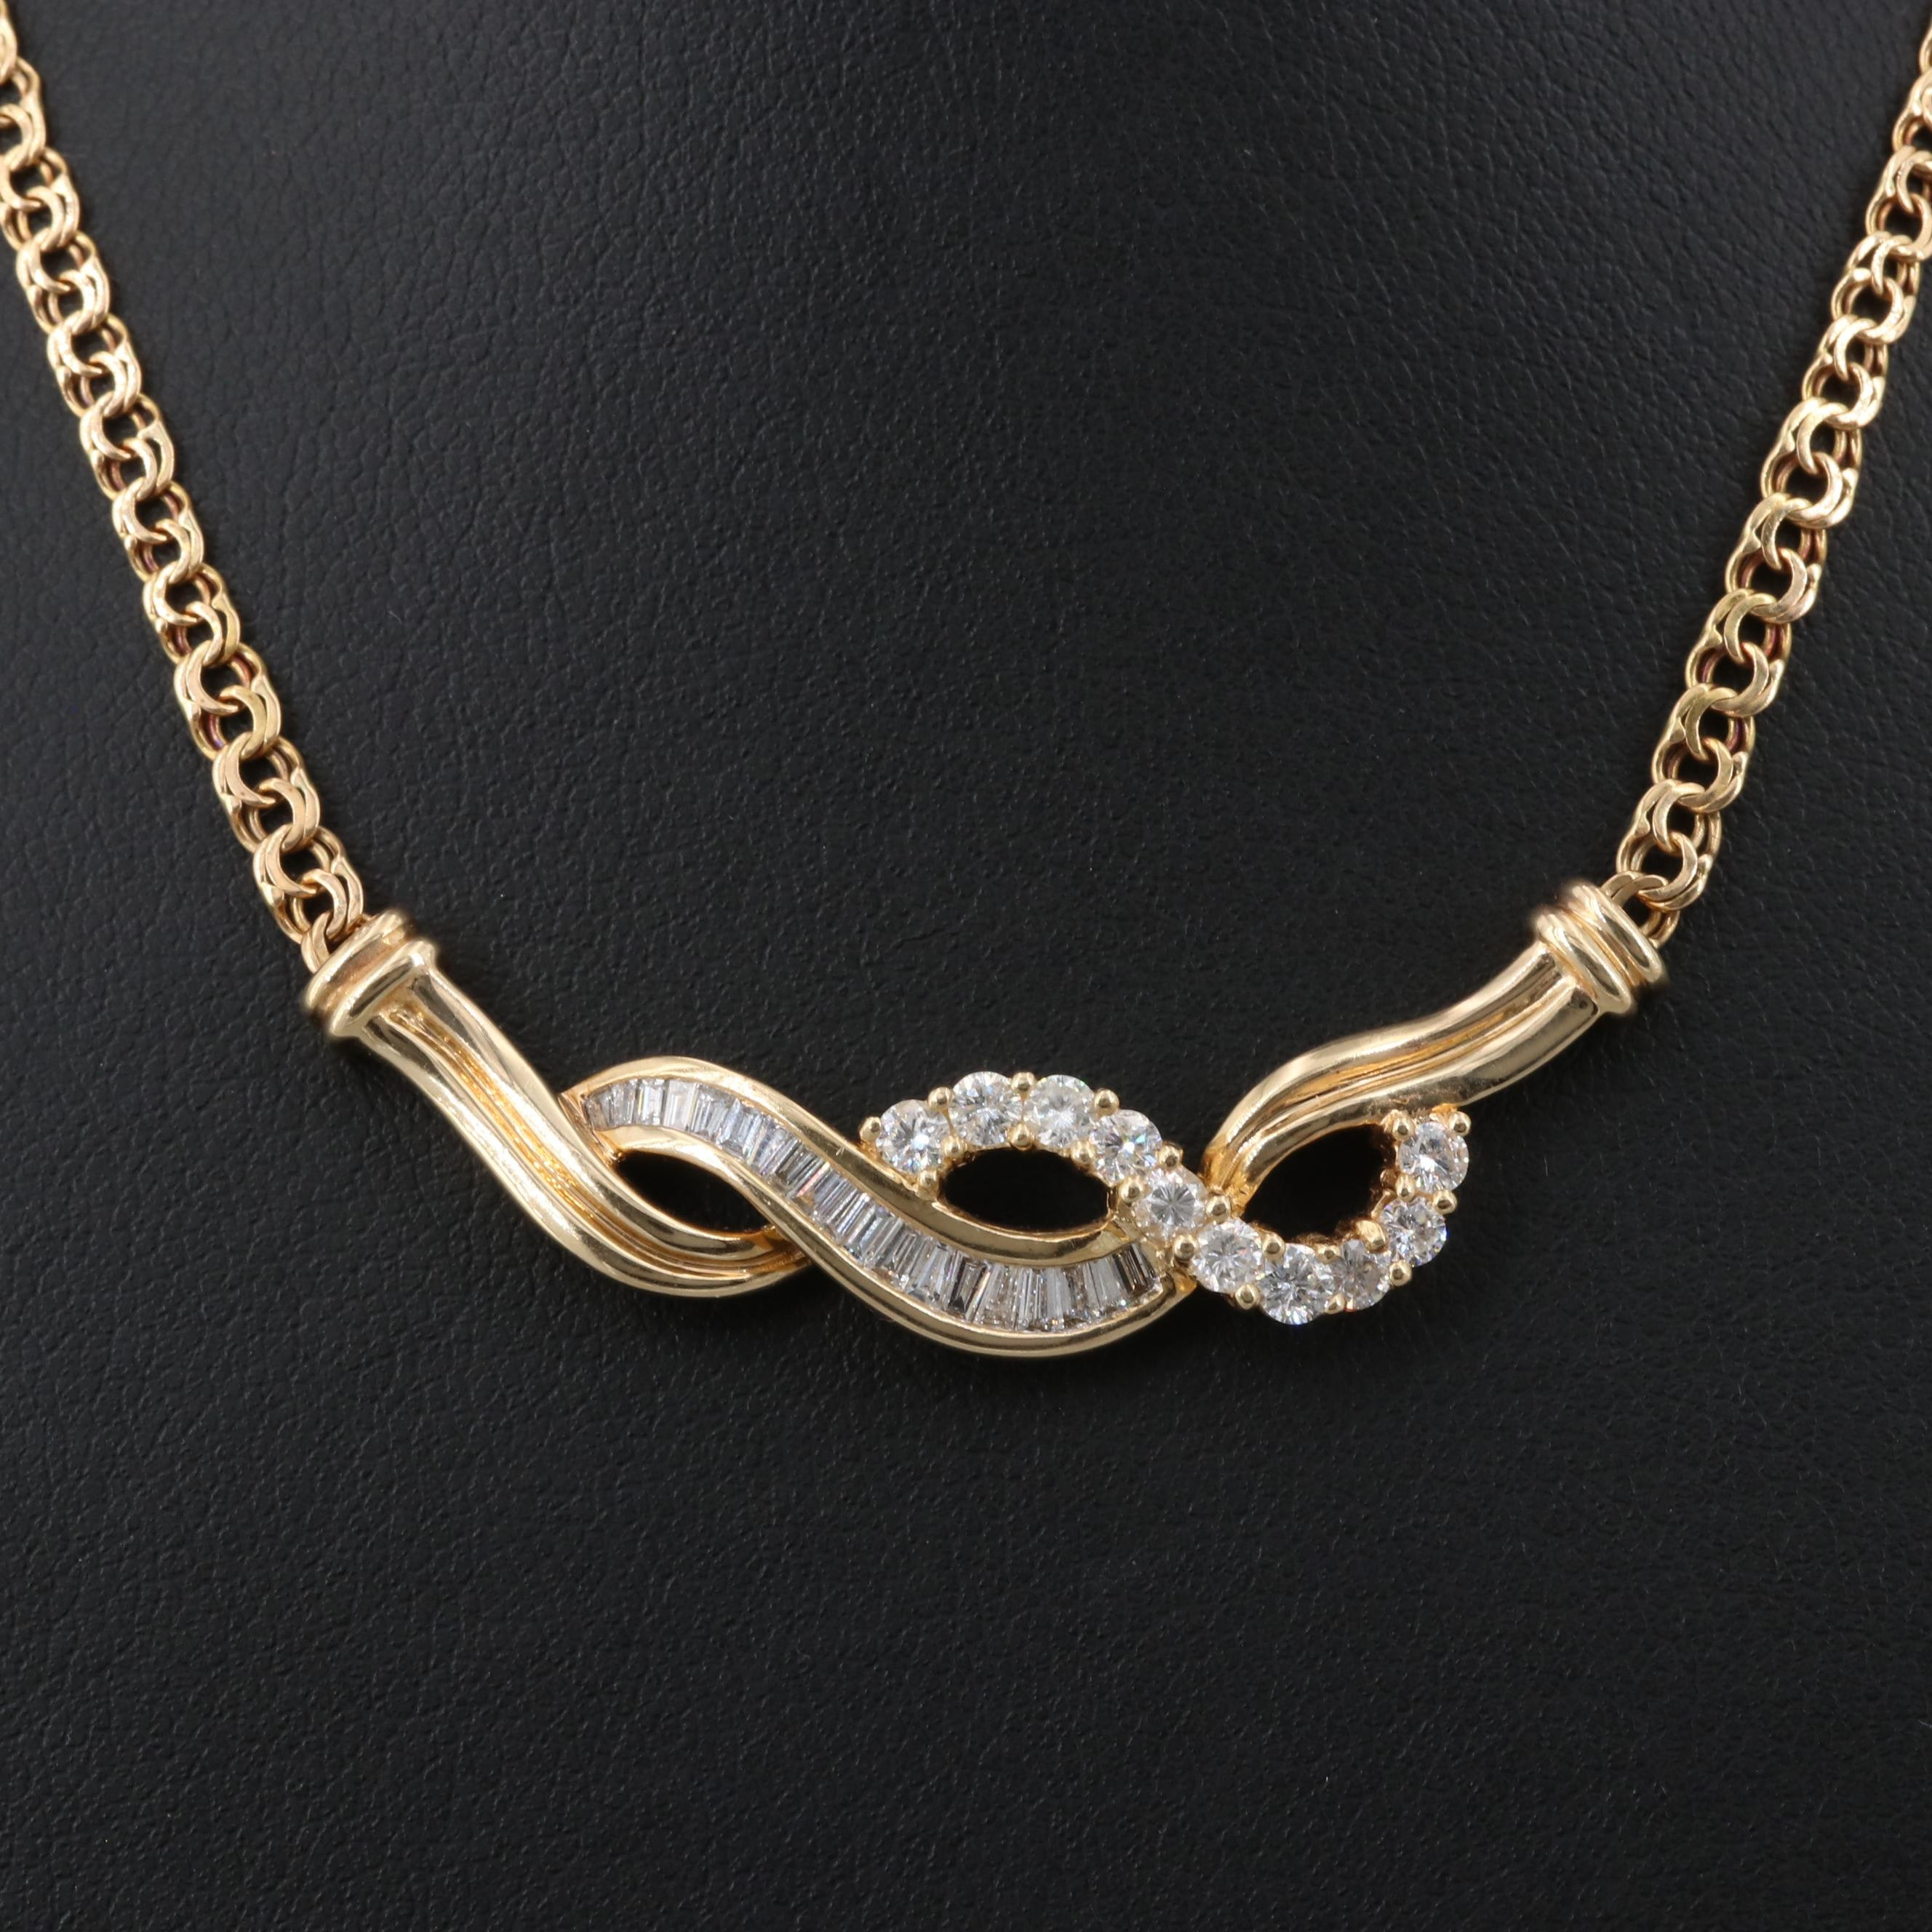 14K and 18K Yellow Gold 1.00 CTW Diamond Necklace